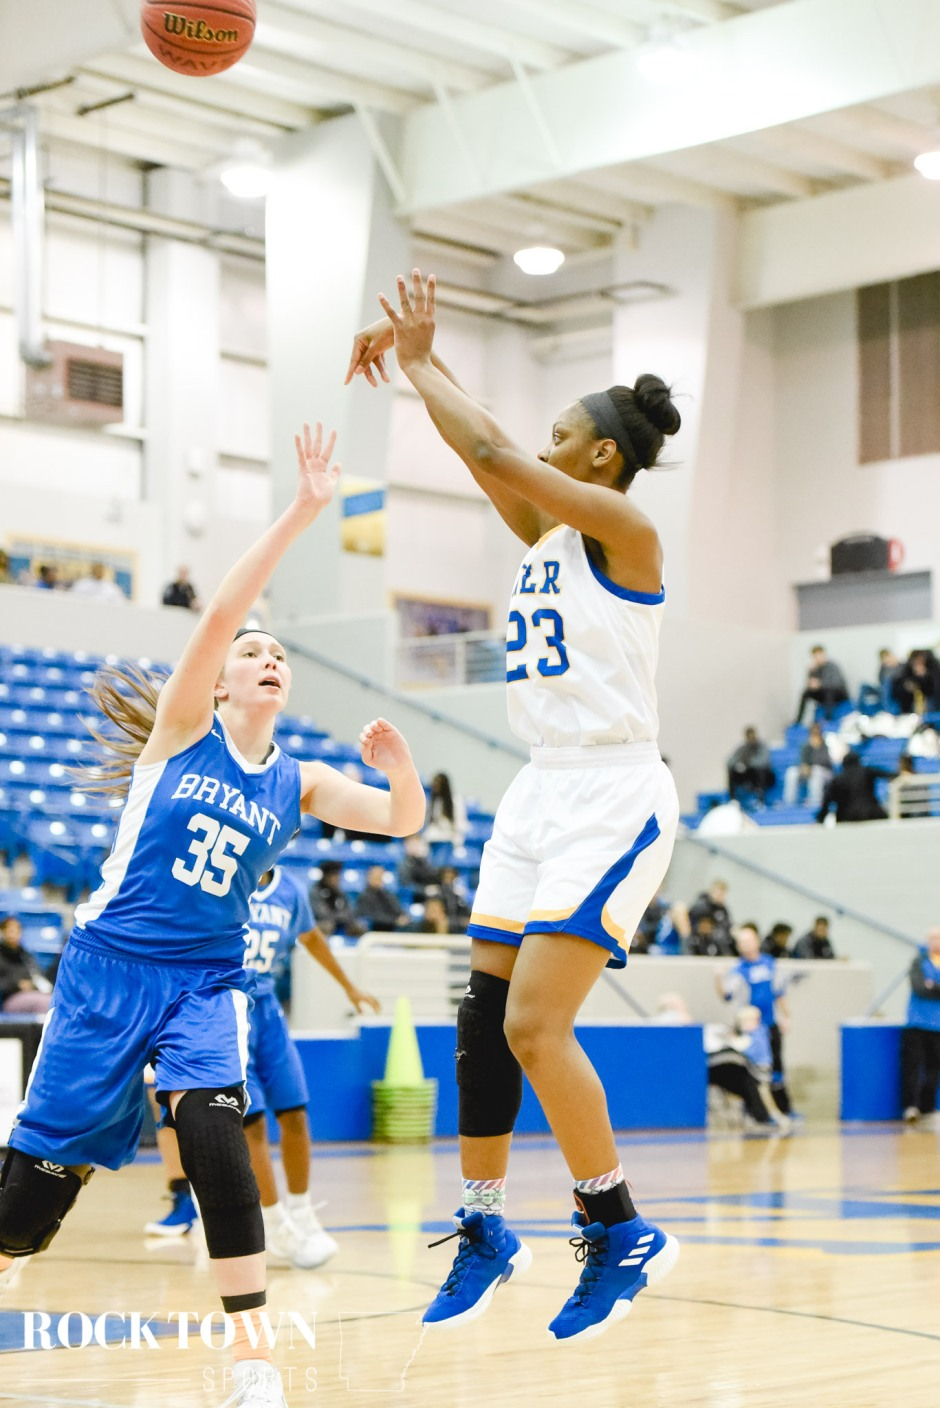 nlr_bryant_basketball_2019-28